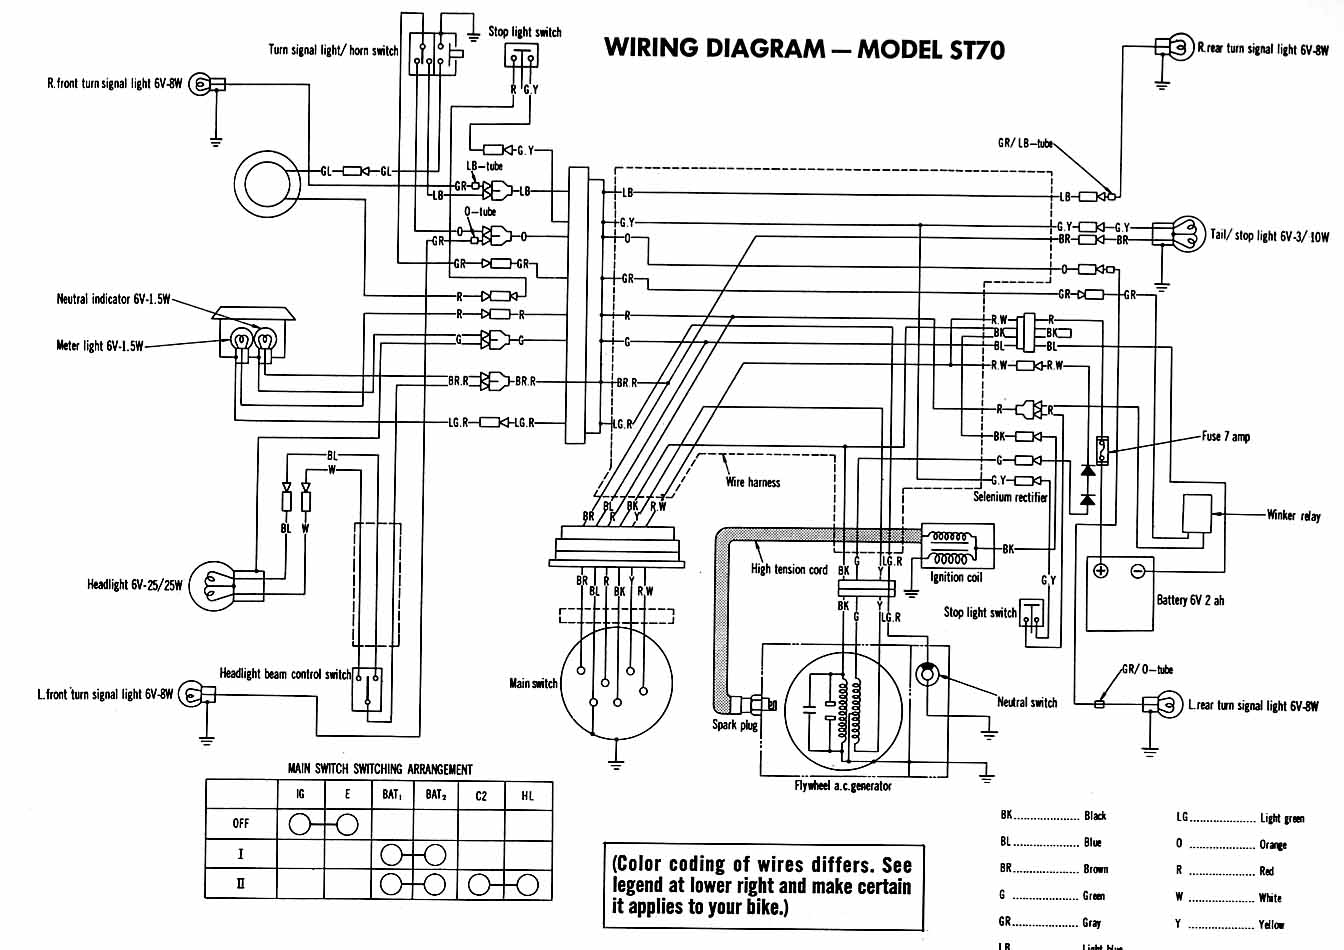 Honda ST70 Electrical Wiring Diagram?resize=665%2C470 jvc kd g340 wiring diagram the best wiring diagram 2017 jvc kd g340 wiring diagram at bayanpartner.co